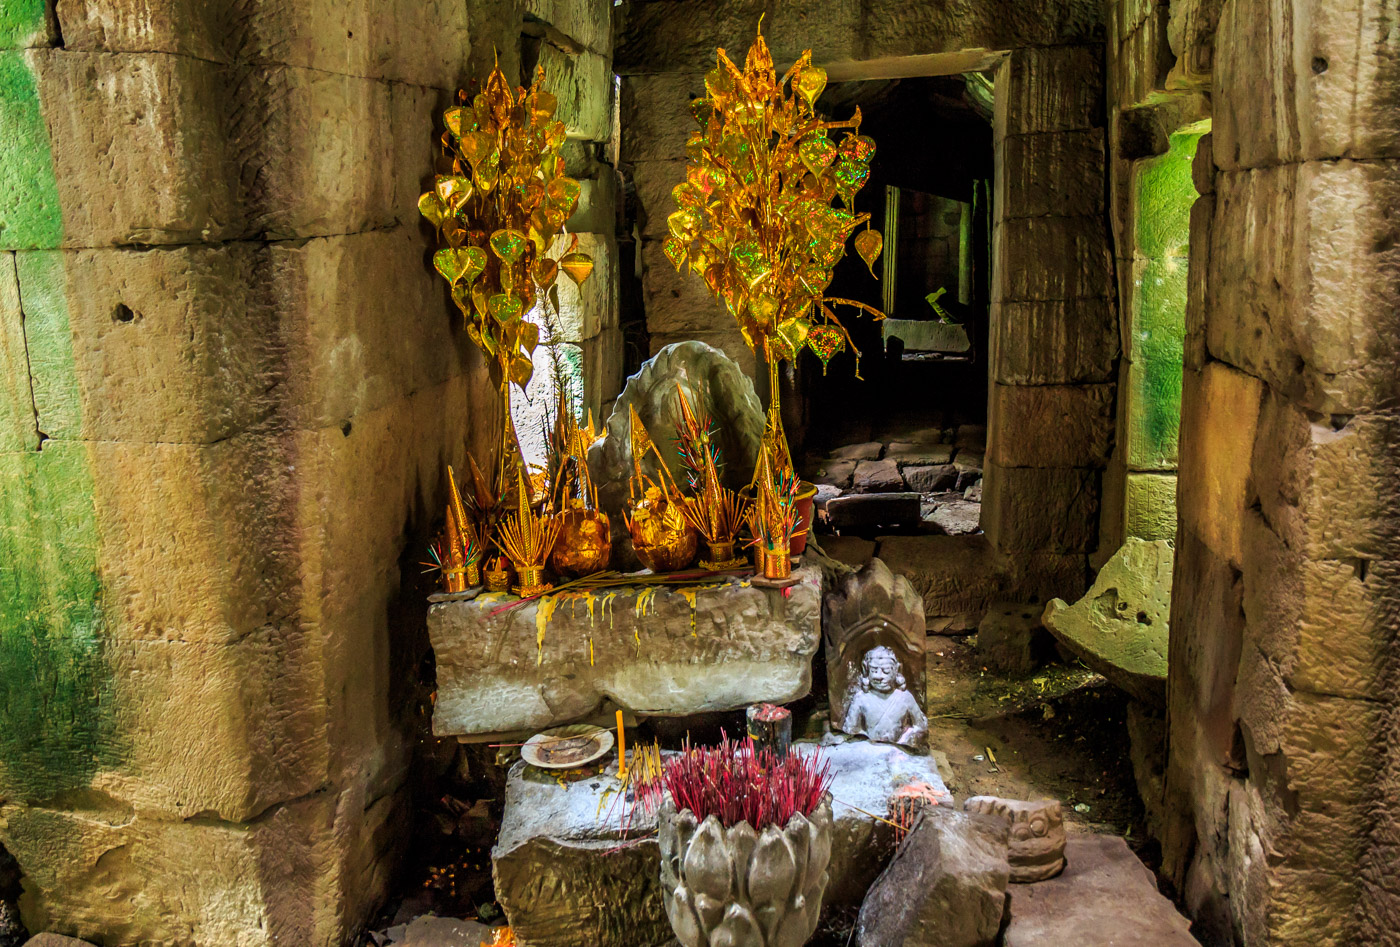 A shrine inside the temple